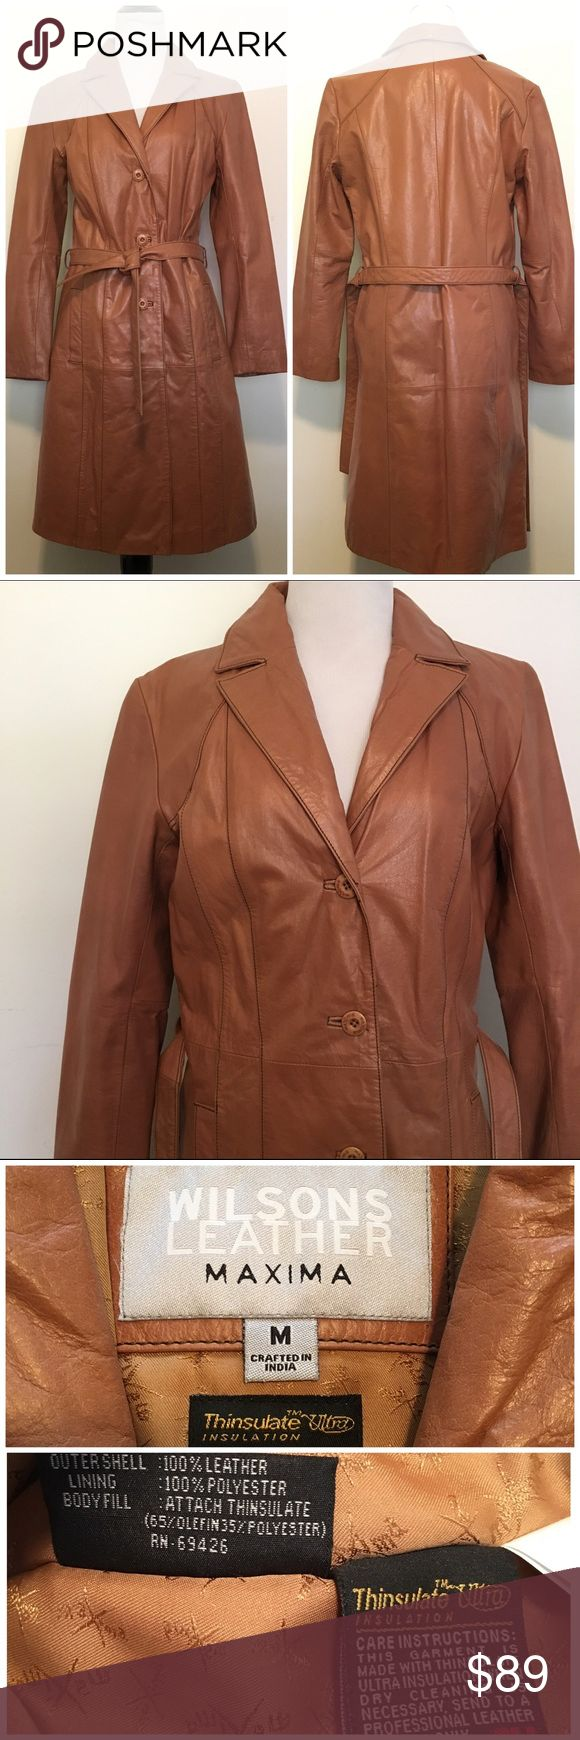 🆕Wilson's Leather Thinsulate Cognac Trench Coat Wilson's Maxima genuine leather cognac trench coat. Absolutely gorgeous! Thinsulate lining to keep you warm without the bulk. Falls below the knees. Full button closure with optional tie around waist. Retro looking v-neck collar. No cracking or peeling. In excellent condition. Size M. TTS. ❌NO TRADES❌NO LOWBALLING❌ Wilsons Leather Jackets & Coats Trench Coats